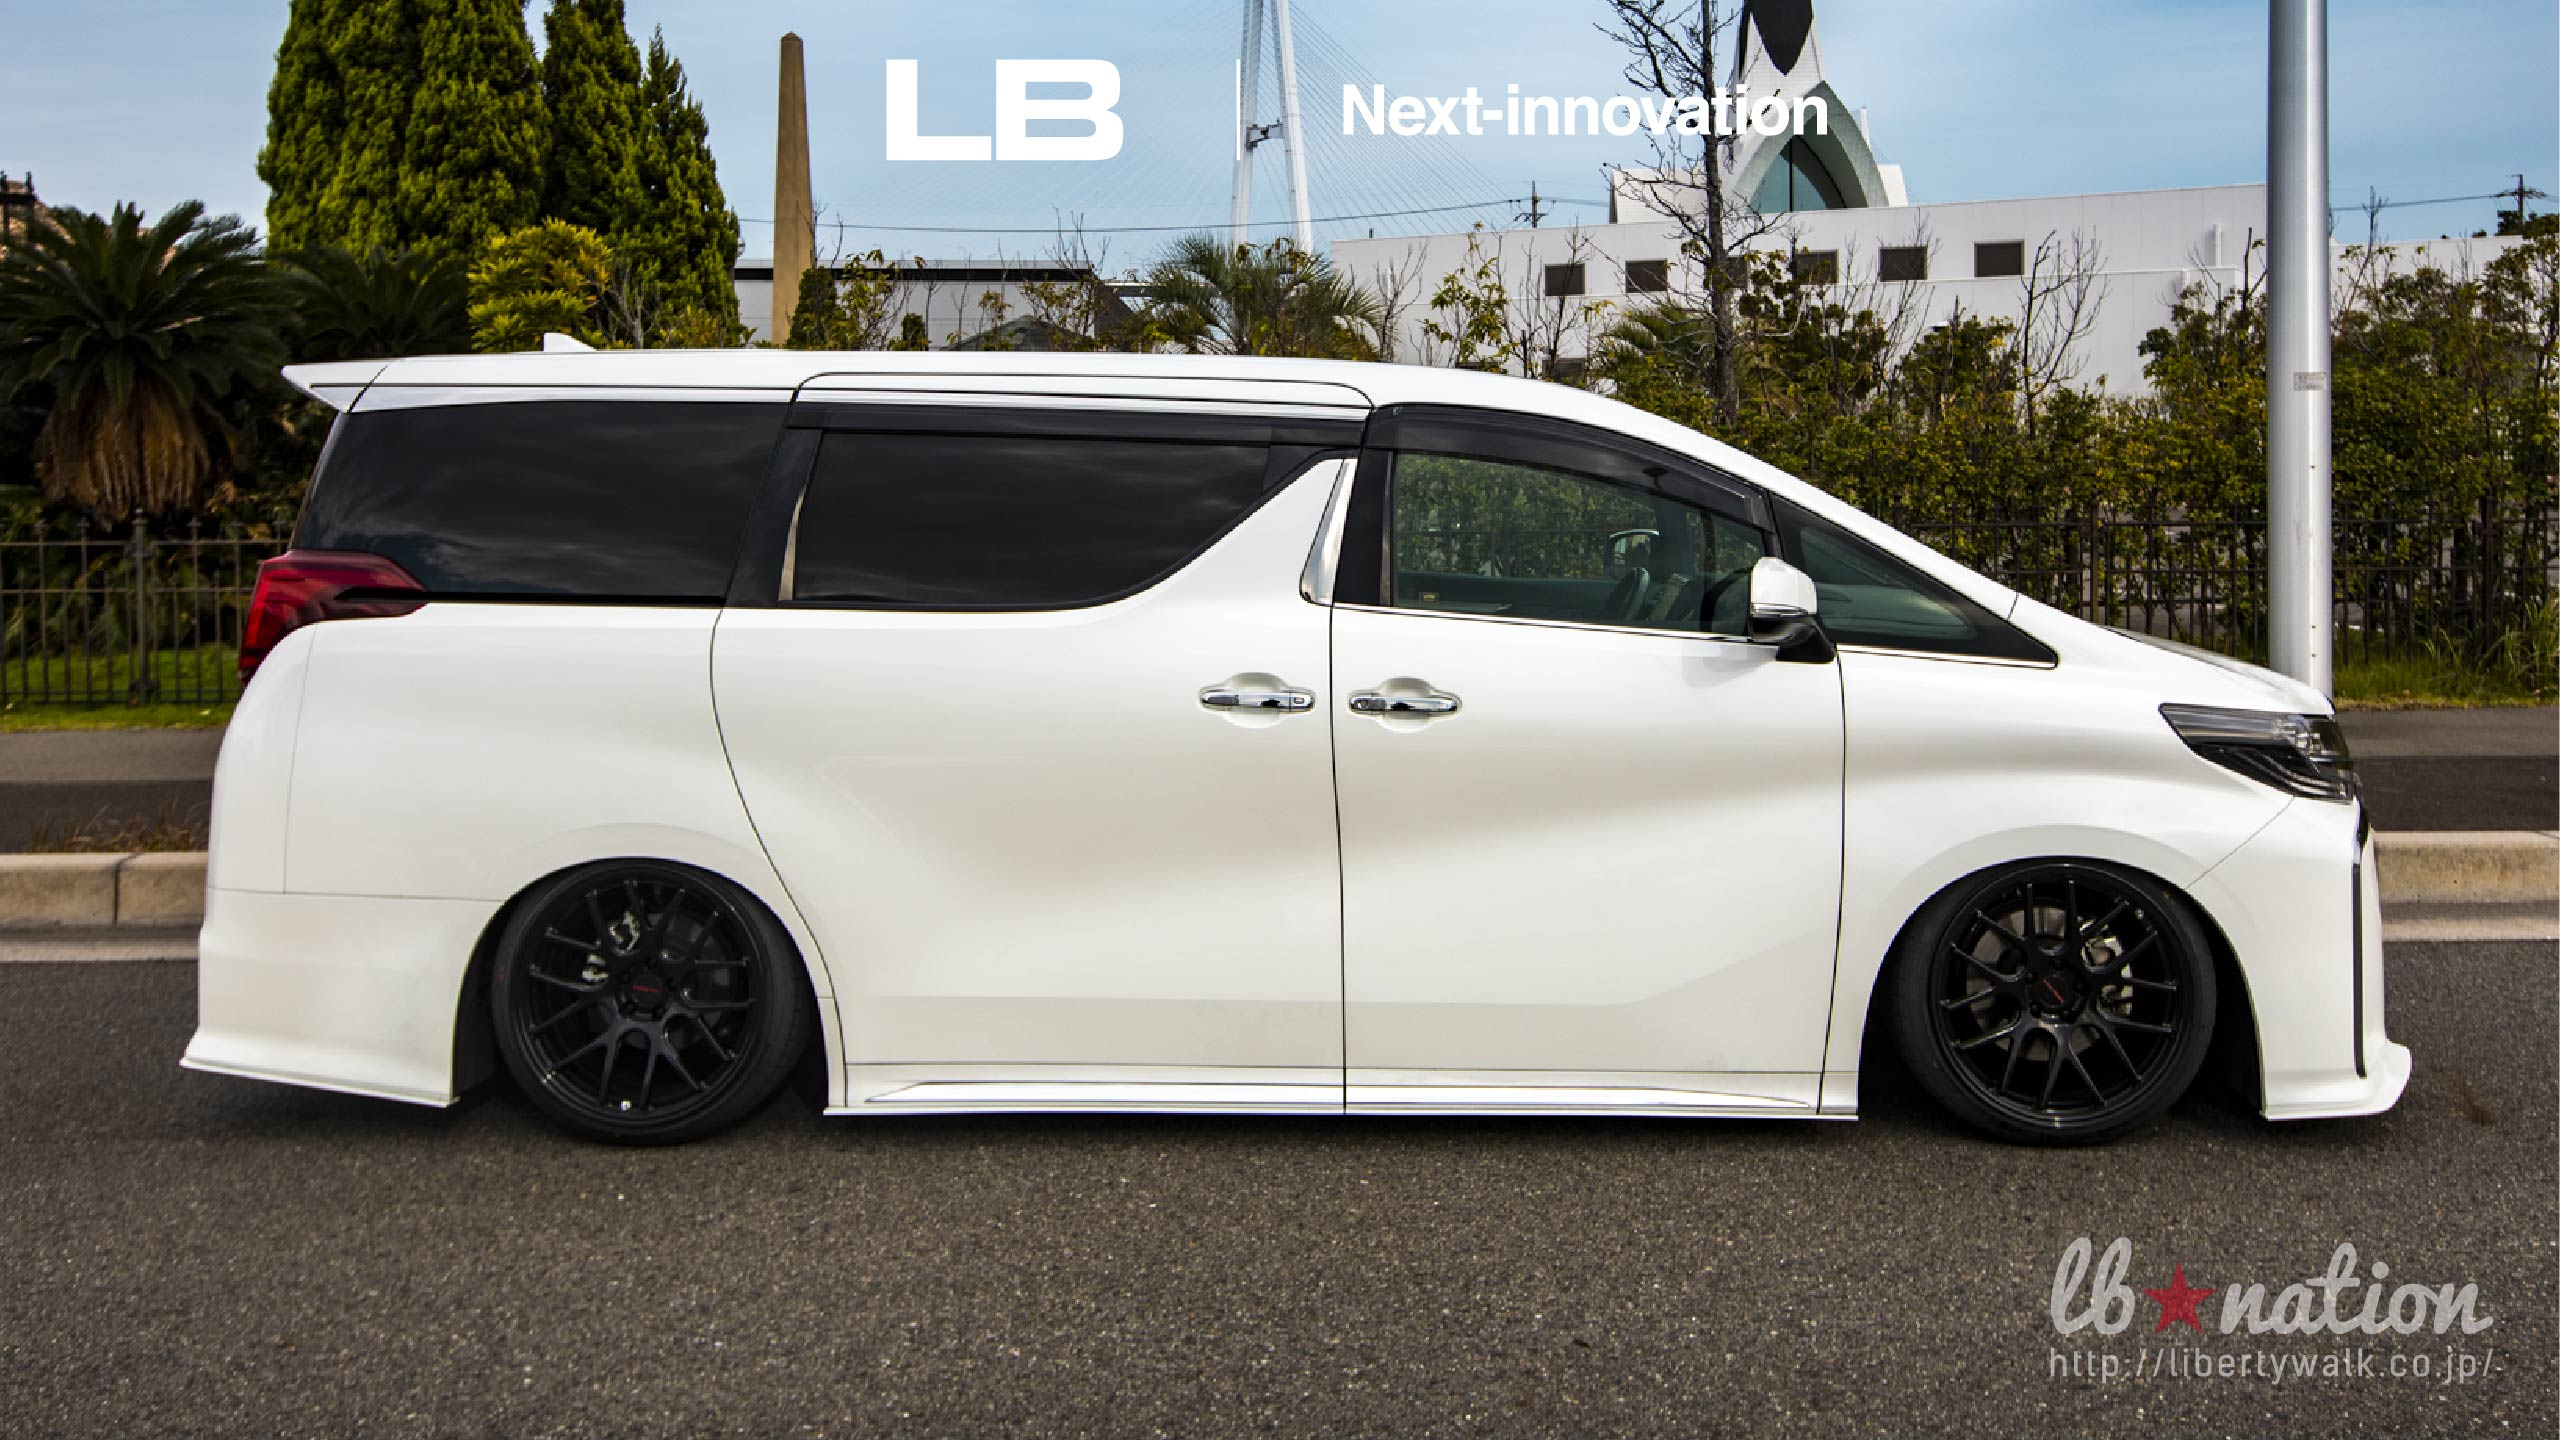 17-50 lb★nation × Next innovation TOYOTA 30ALPHARD